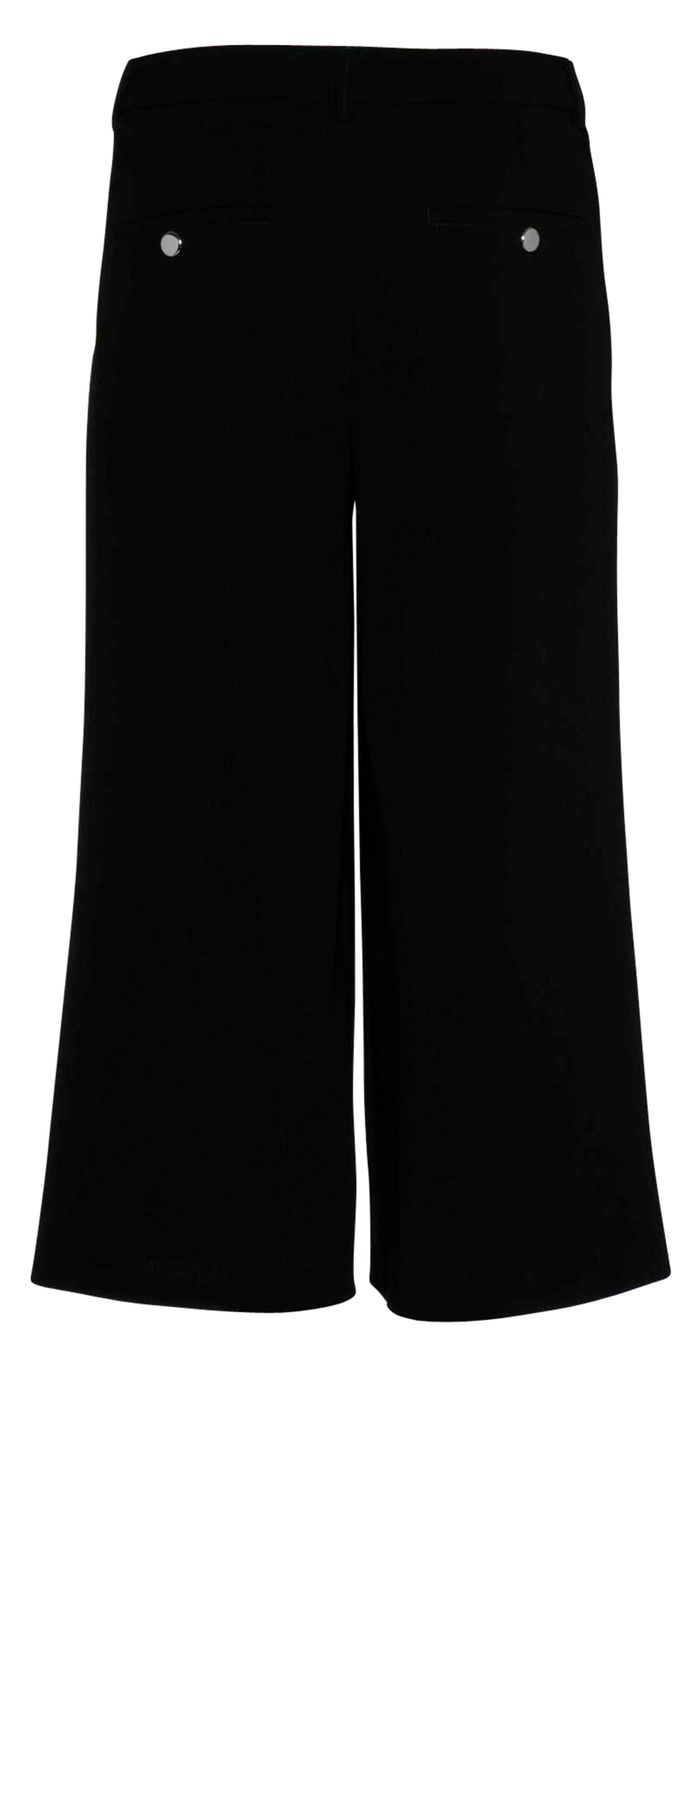 Atelier Gardeur - Straight Fit - Damen Culotte Fashion Style in schwarz, Fancy2 (061421) – Bild 3